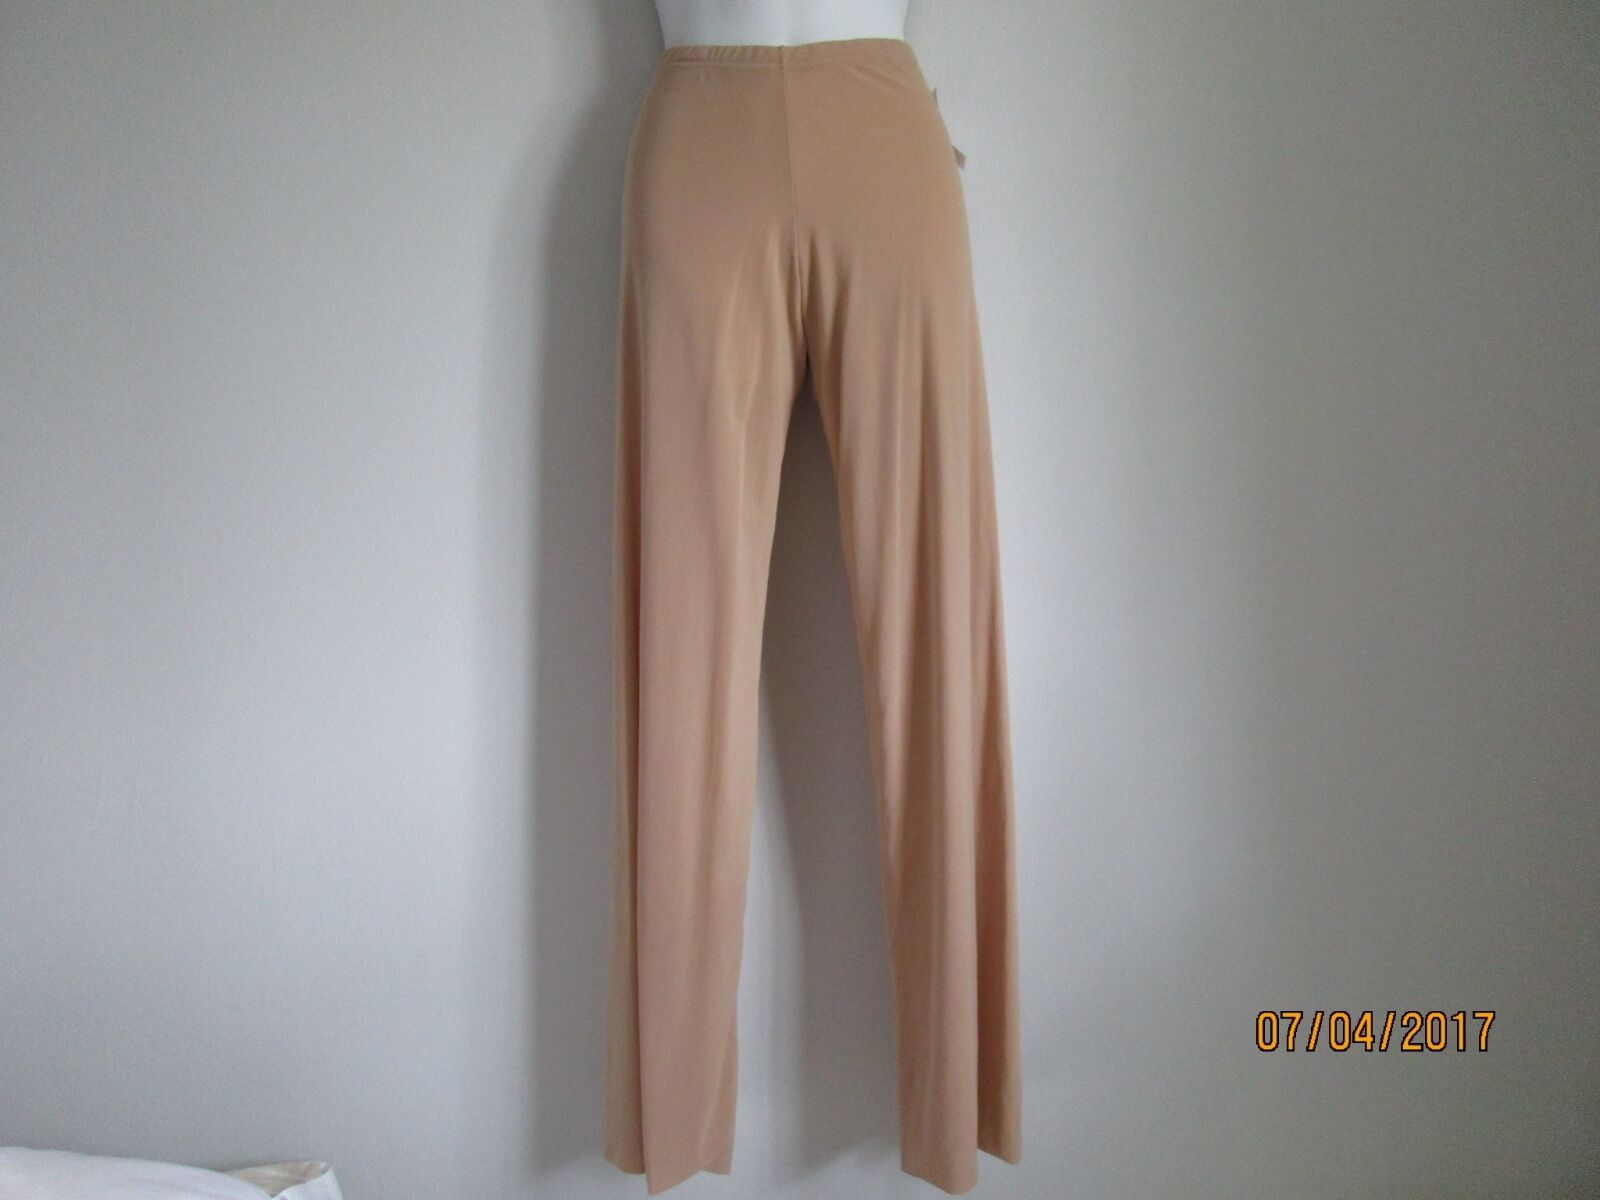 NEW ALMERIA BROWN TAN POLYAMIDE ELASTANE WOMEN'S PANTS SIZE S  MADE IN ITALY